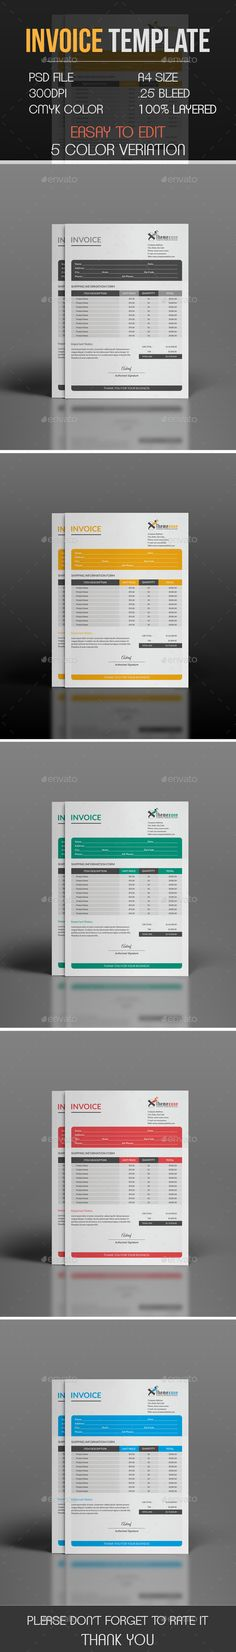 Invoice - #Proposals & #Invoices #Stationery Download here: https://graphicriver.net/item/invoice/18820585?ref=alena994